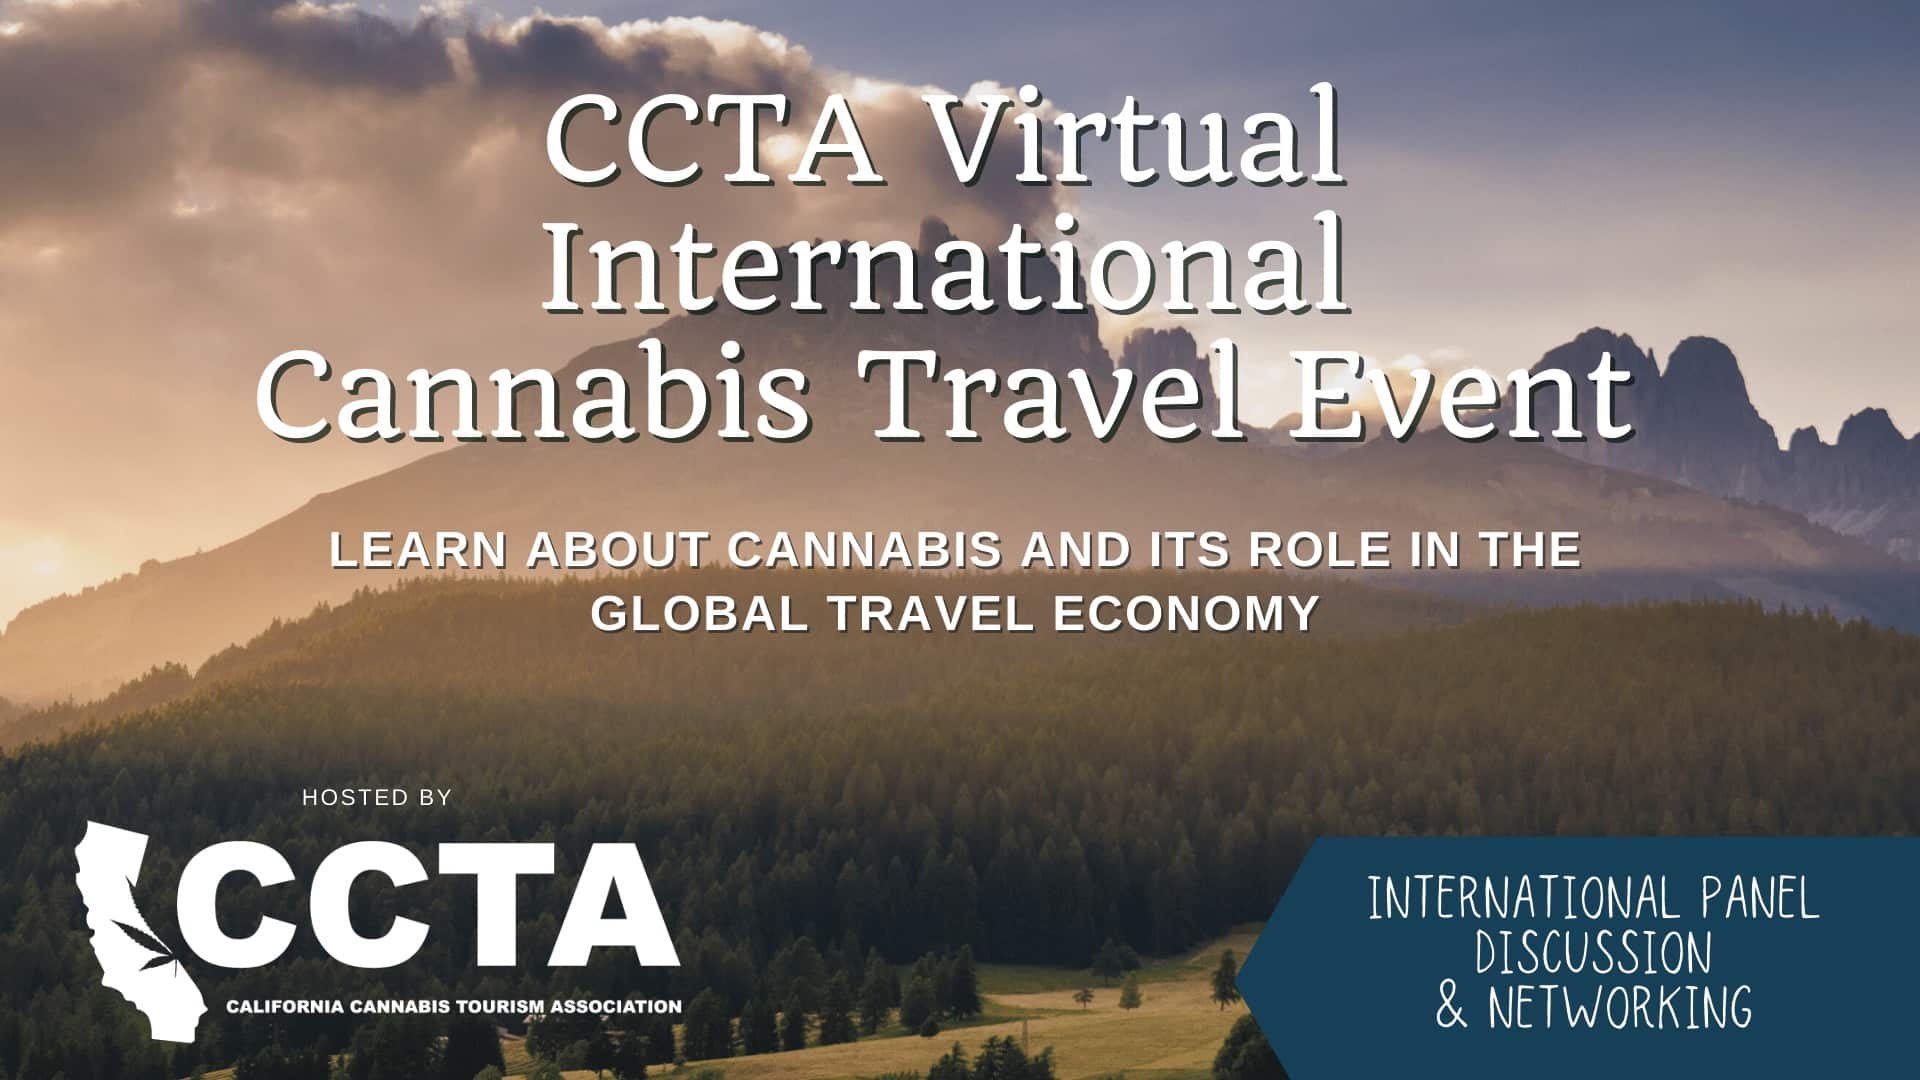 CCTA Virtual International Cannabis Travel Event